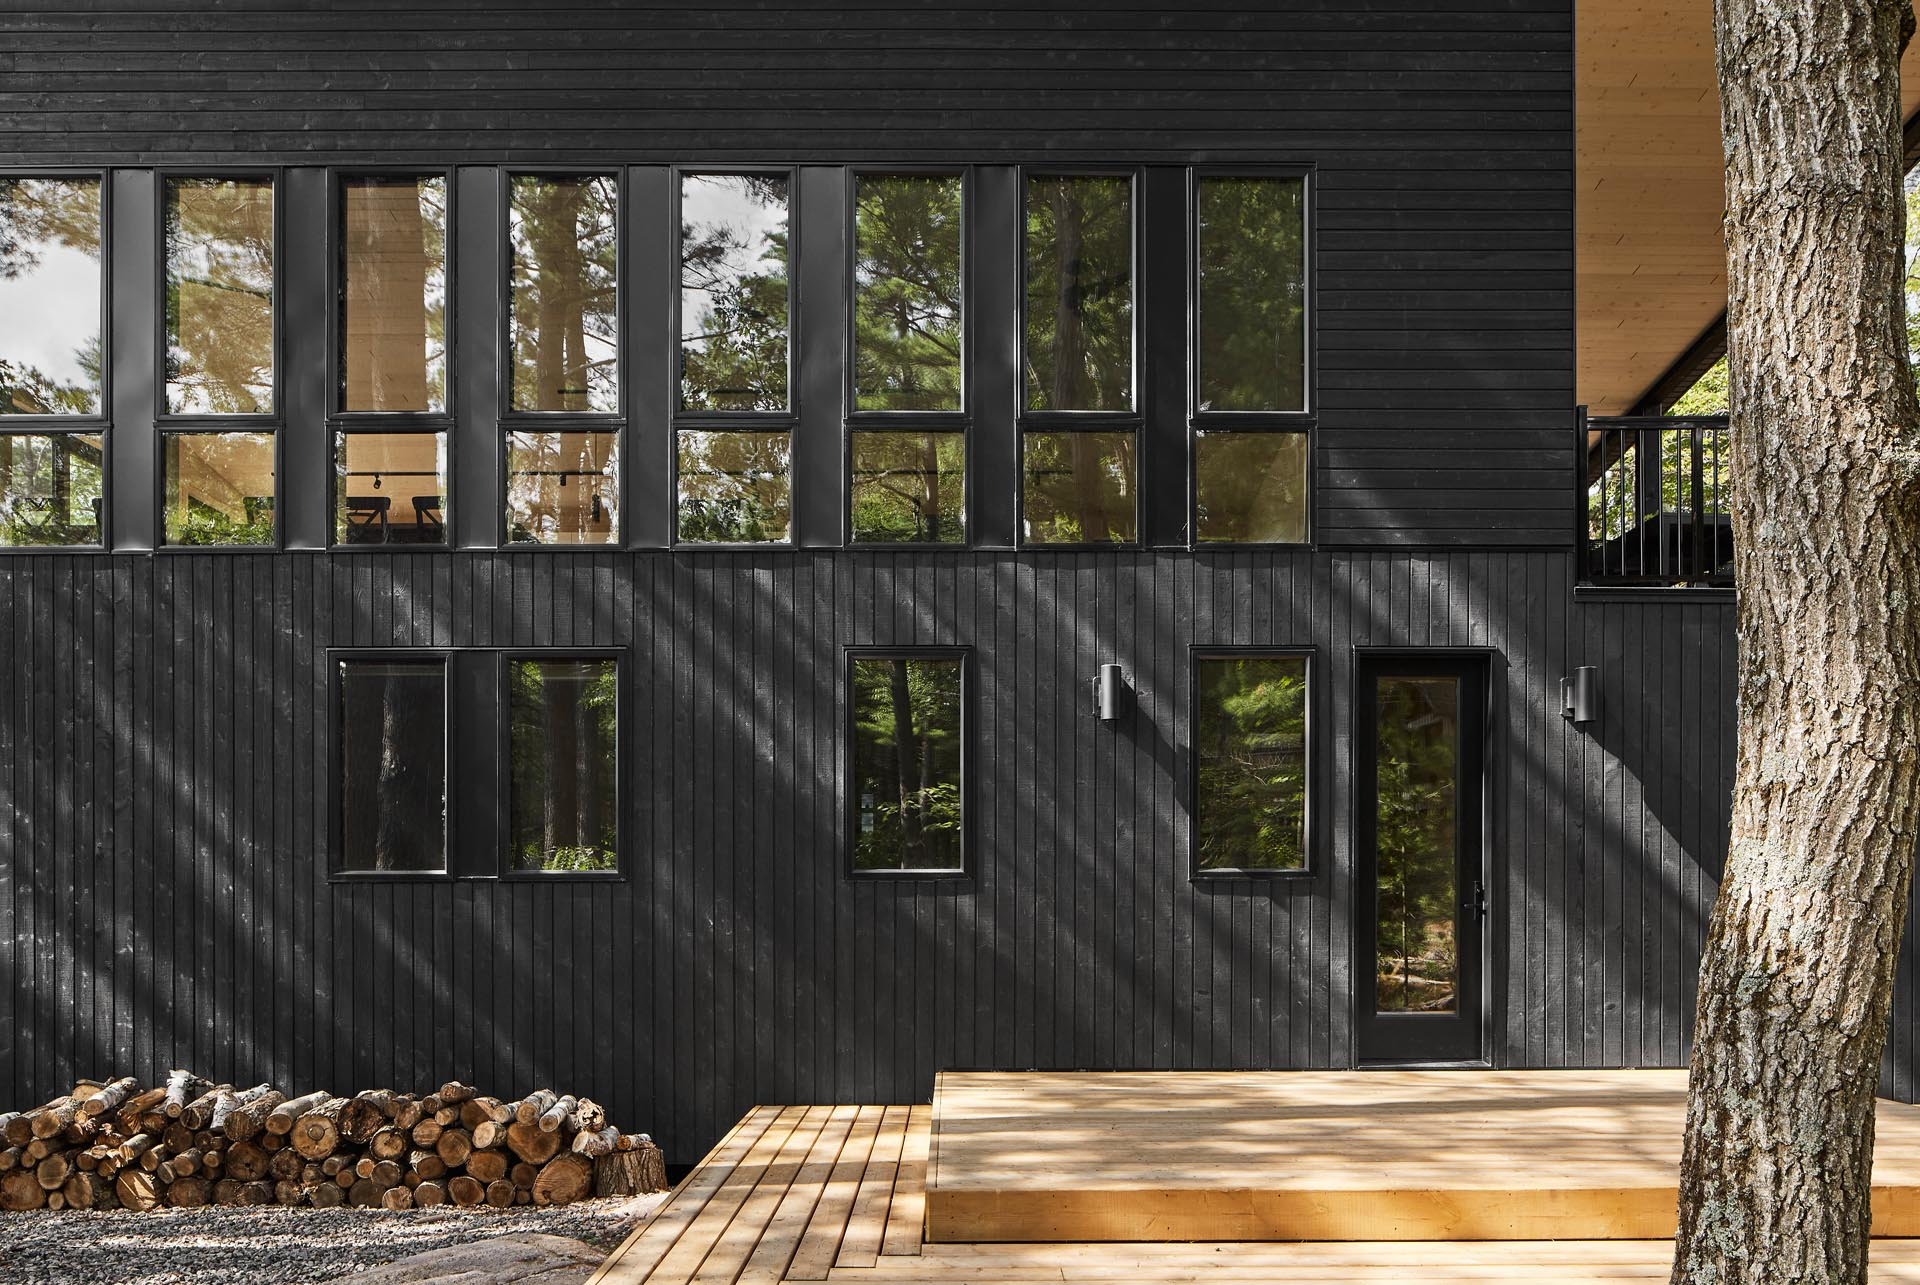 A modern cottage with black wood siding and matching black window frames.